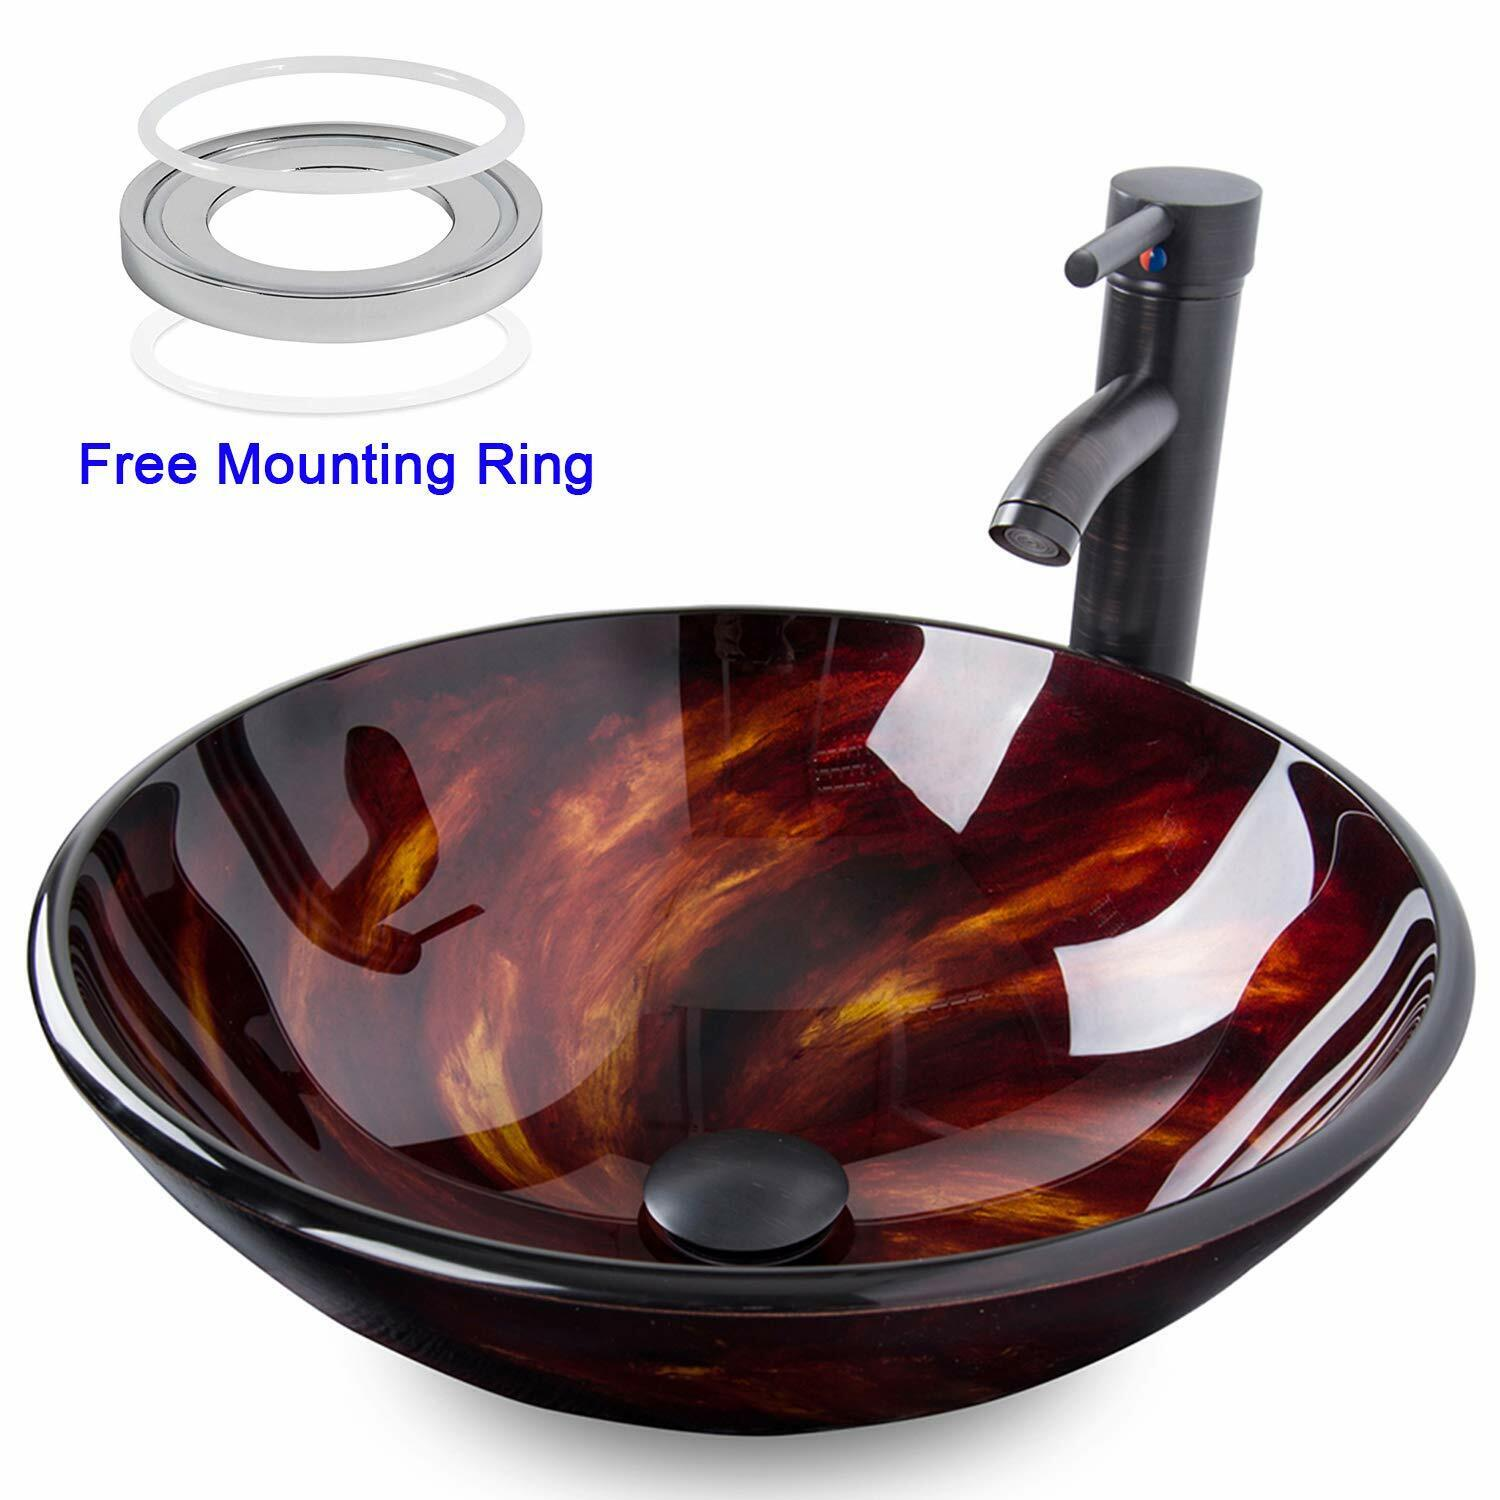 Bathroom Artistic Vessel Sink Combo Tempered Glass Faucet Po